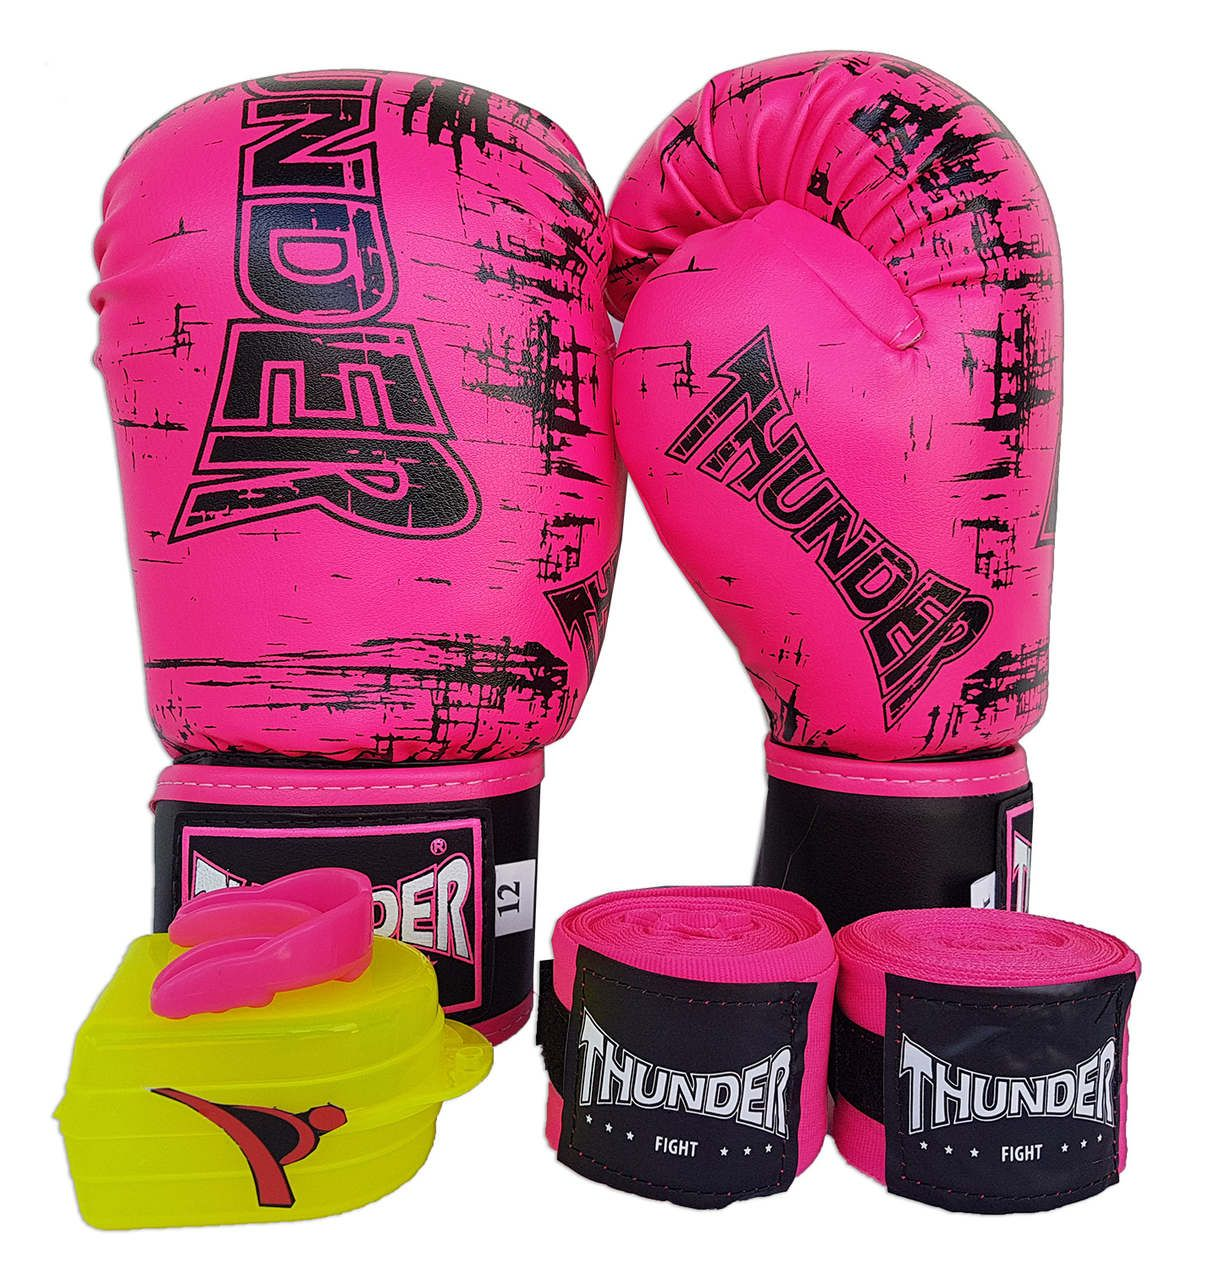 Super Kit de Muay Thai / Kickboxing Feminino 12oz - Caneleira M - Rosa - Thunder Fight  - PRALUTA SHOP